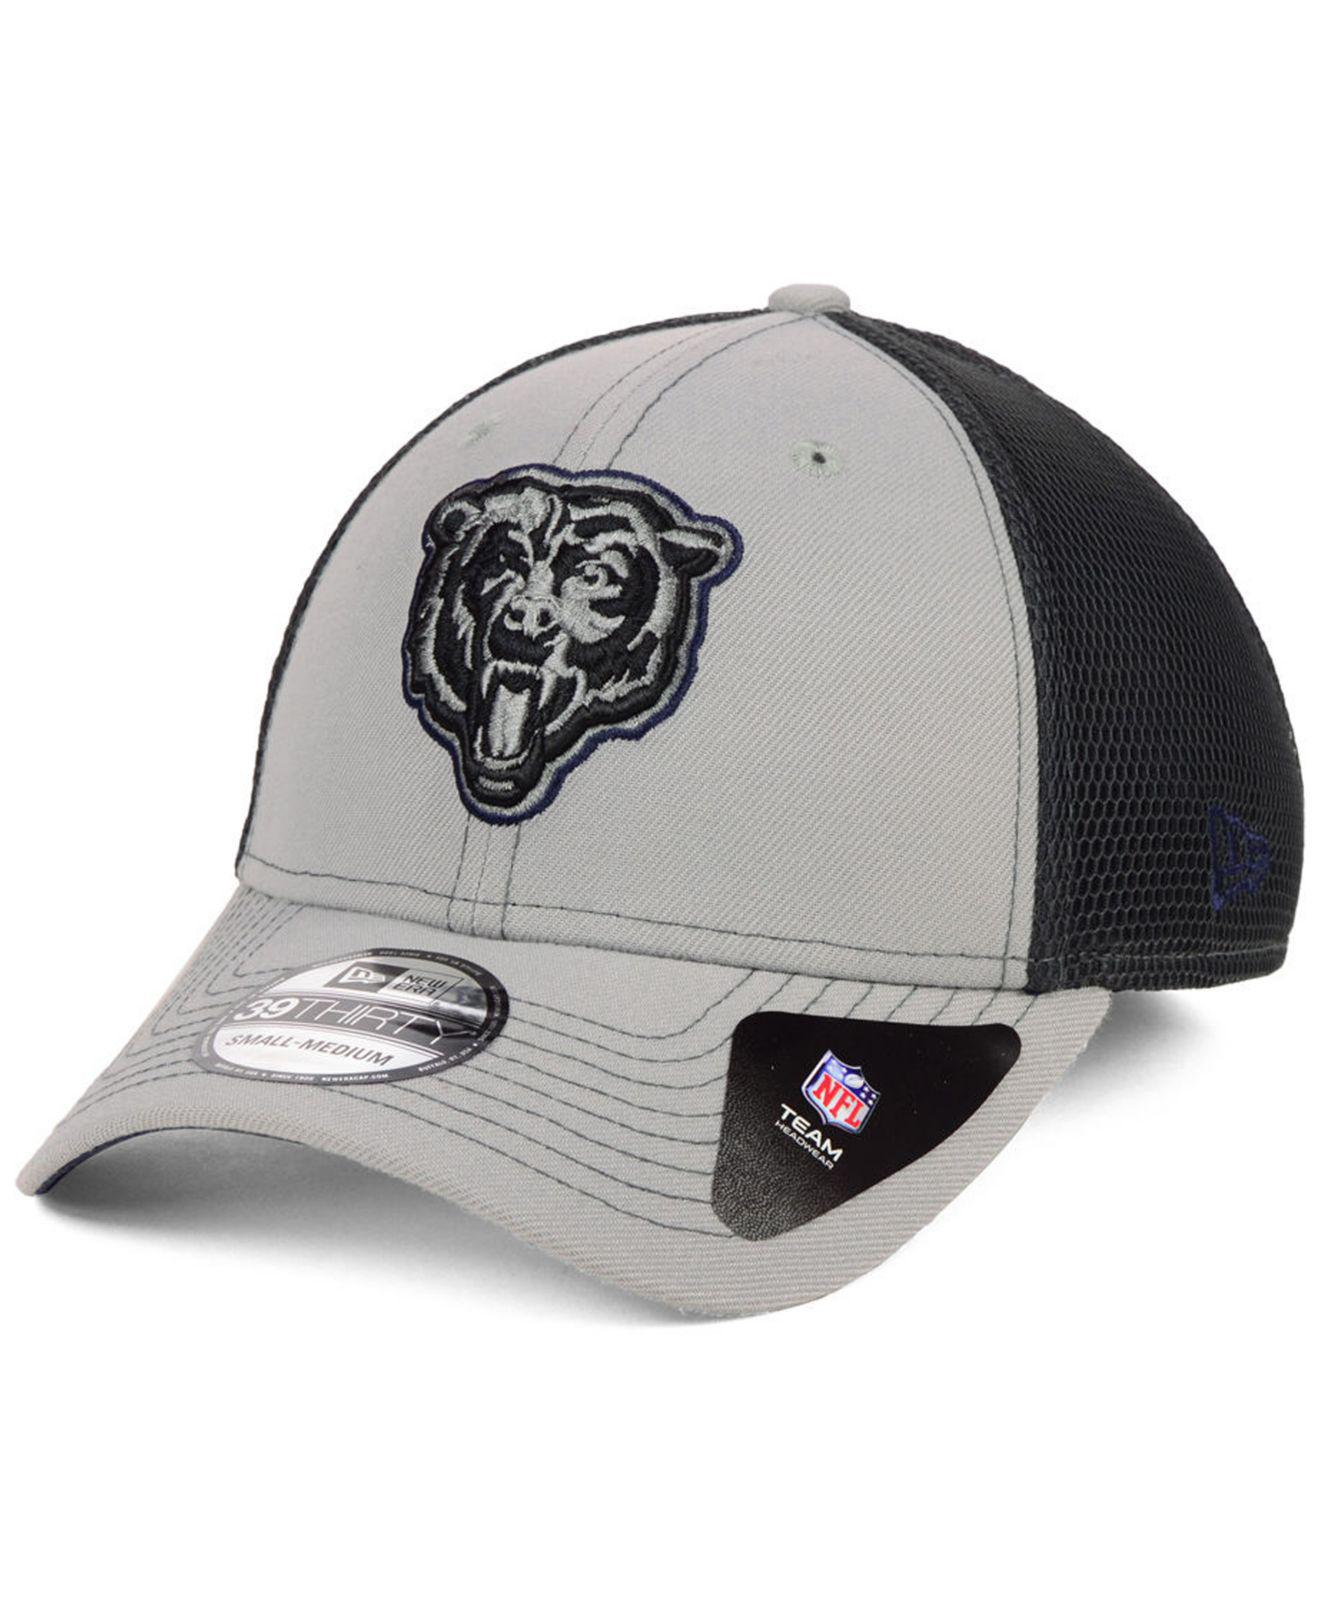 08fc831a14635 ... Chicago Bears 2-tone Sided 39thirty Cap for Men - Lyst. View fullscreen